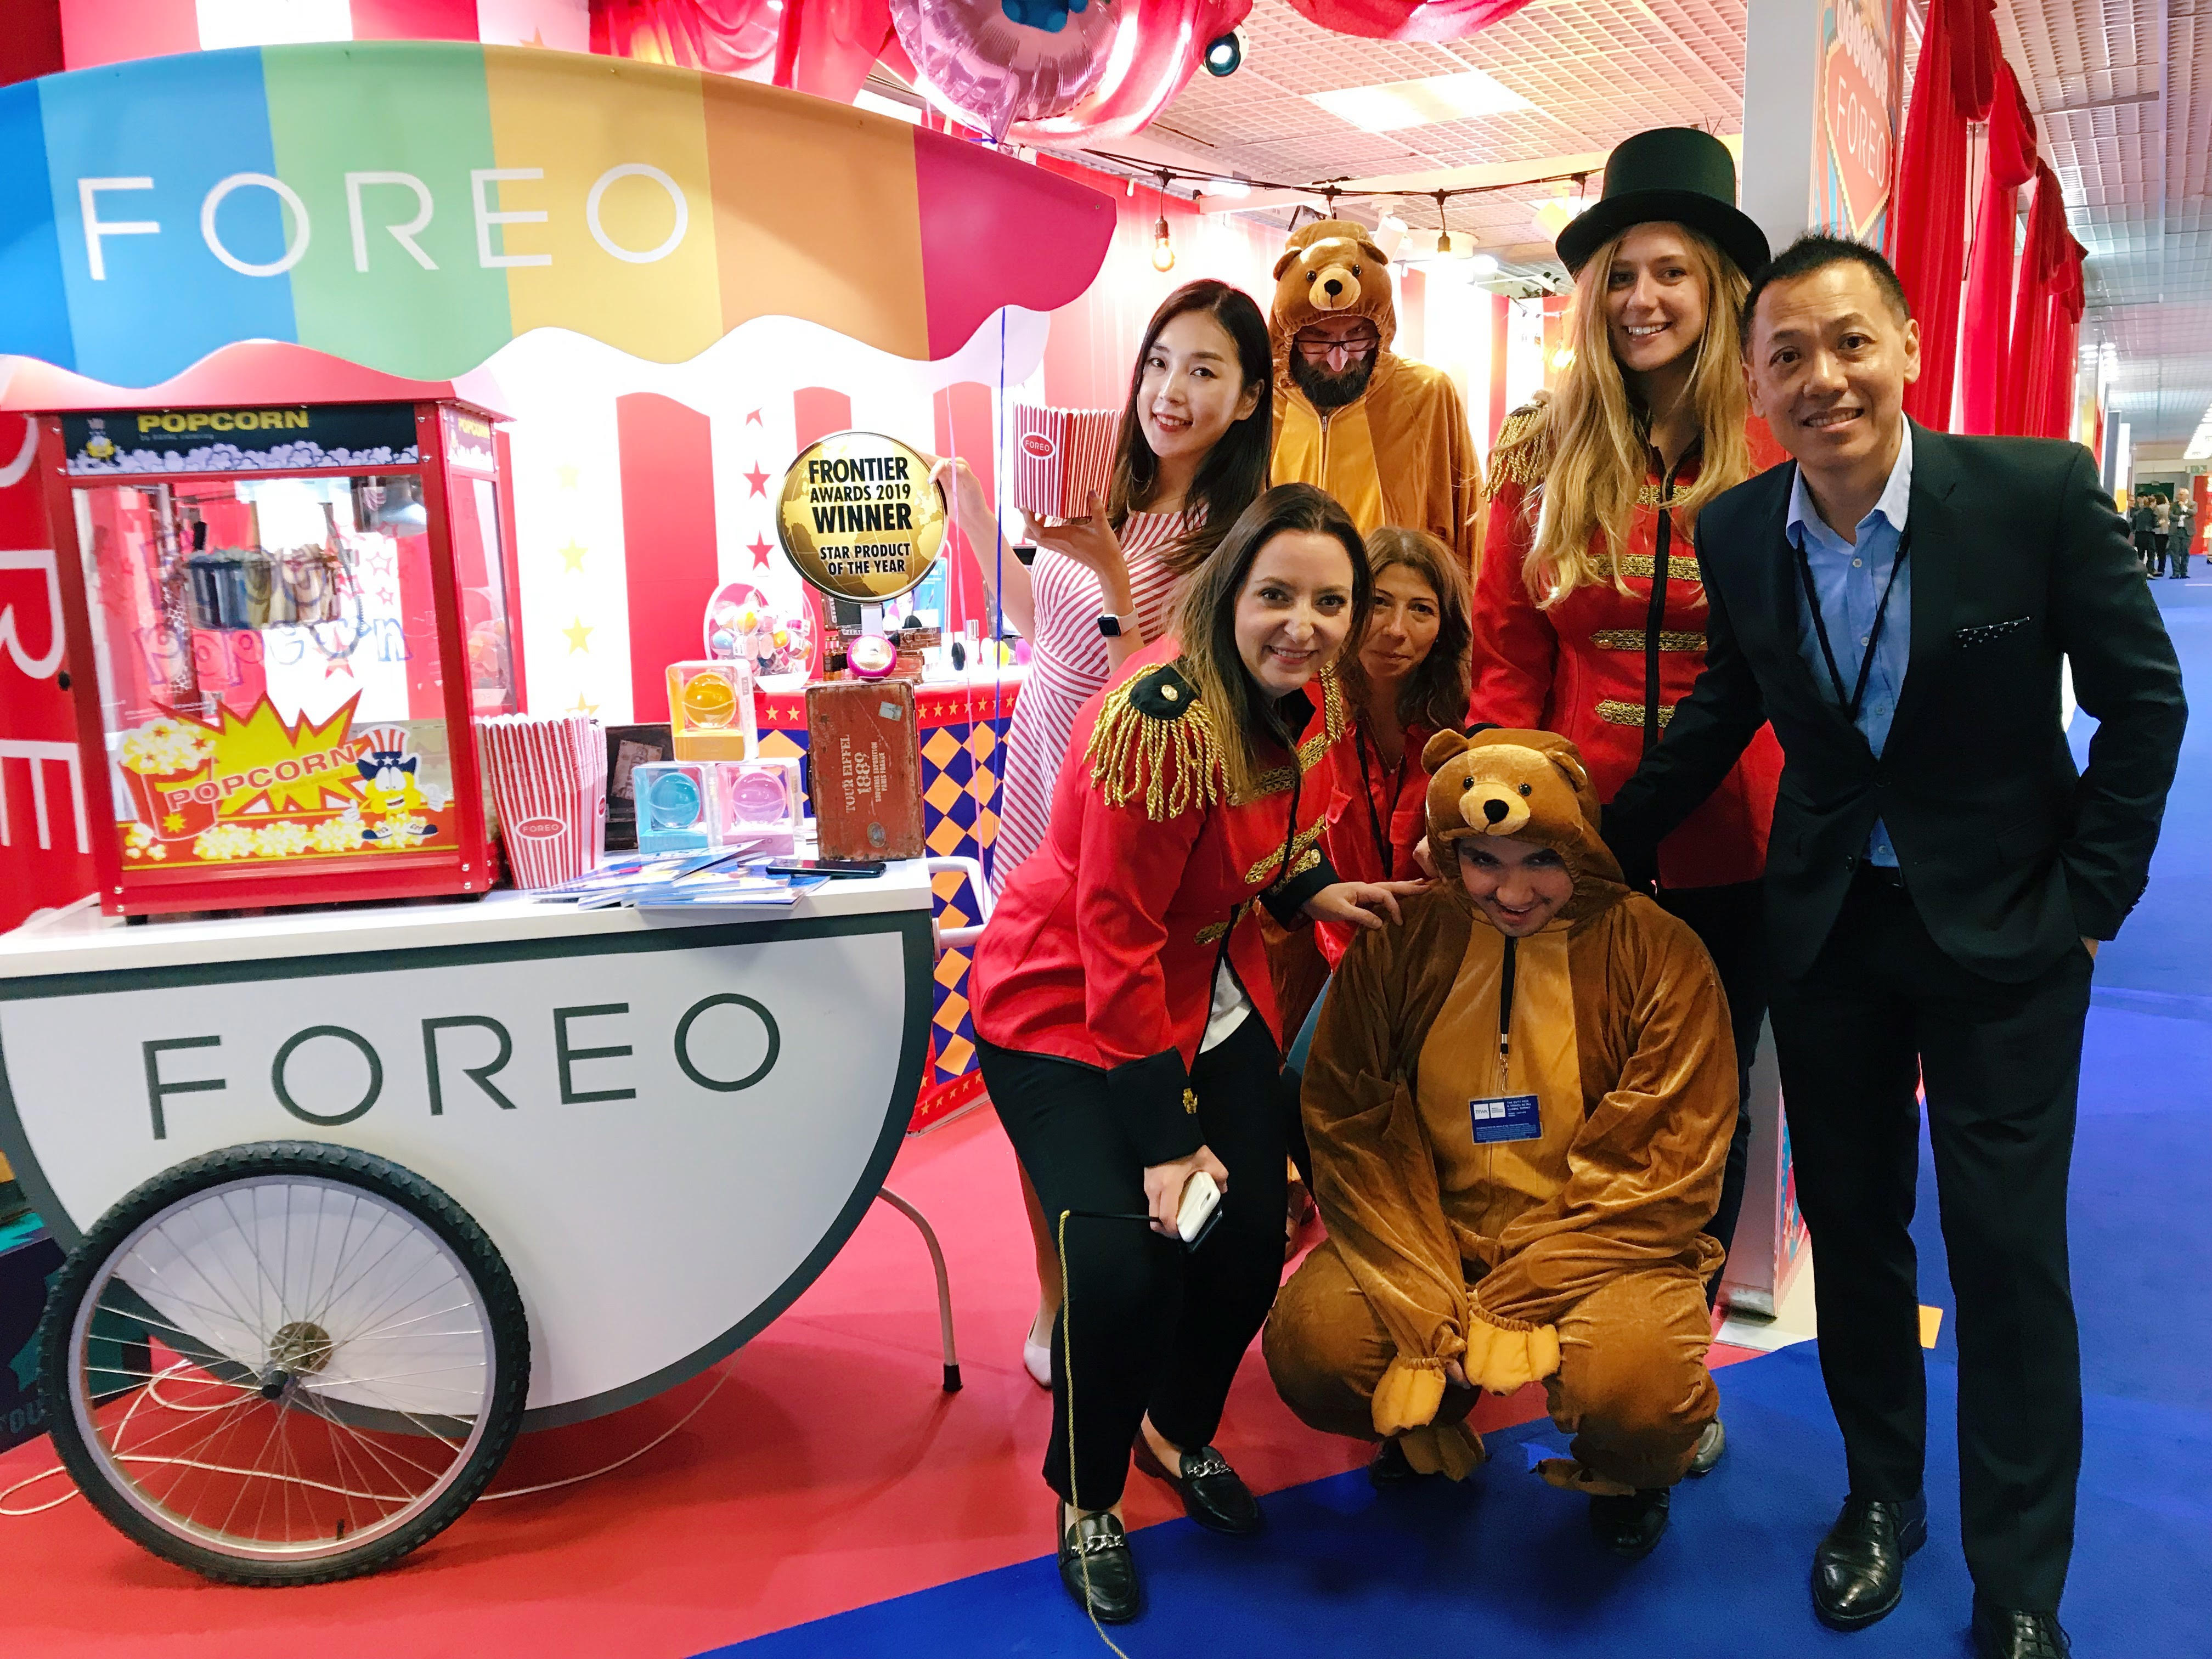 FOREO at tfwa with circus theme